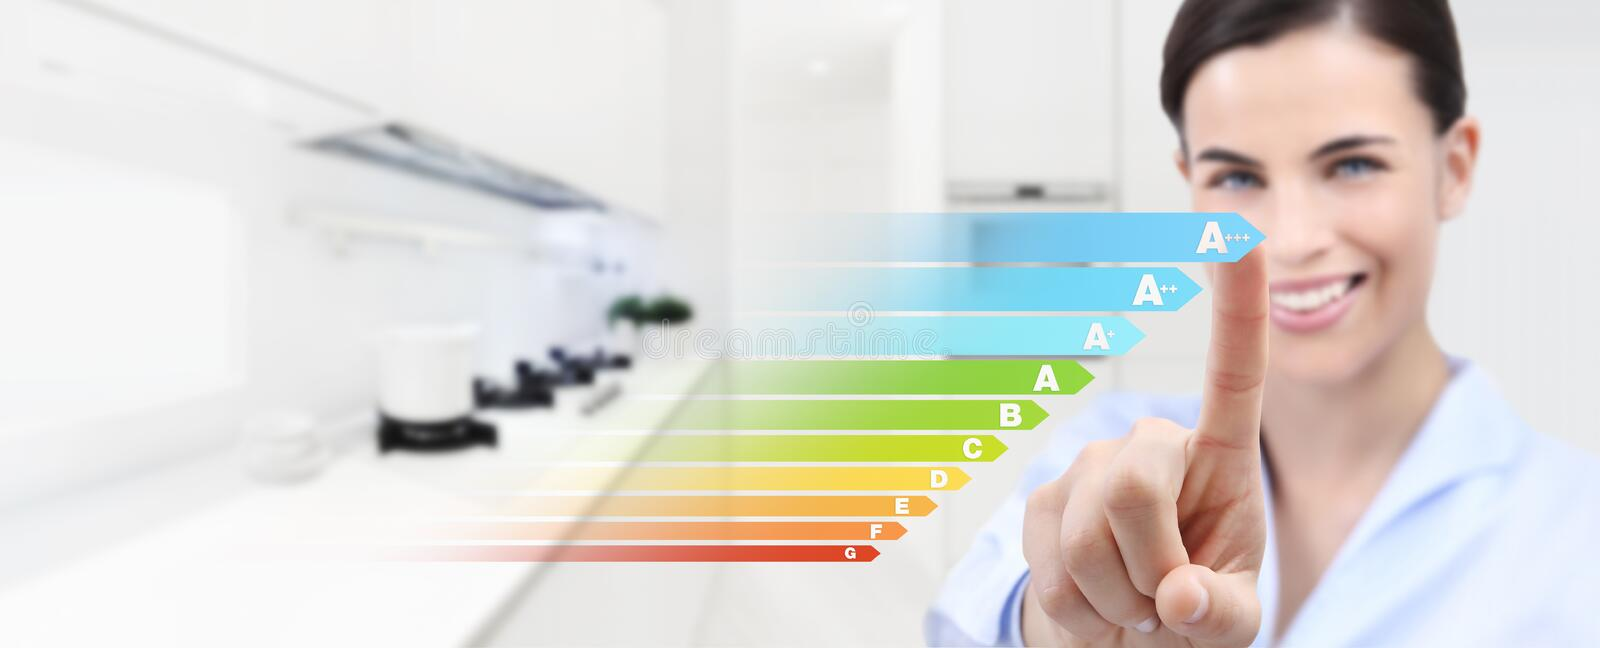 Energy efficiency smiling woman hand touch screen with colored s royalty free stock photo